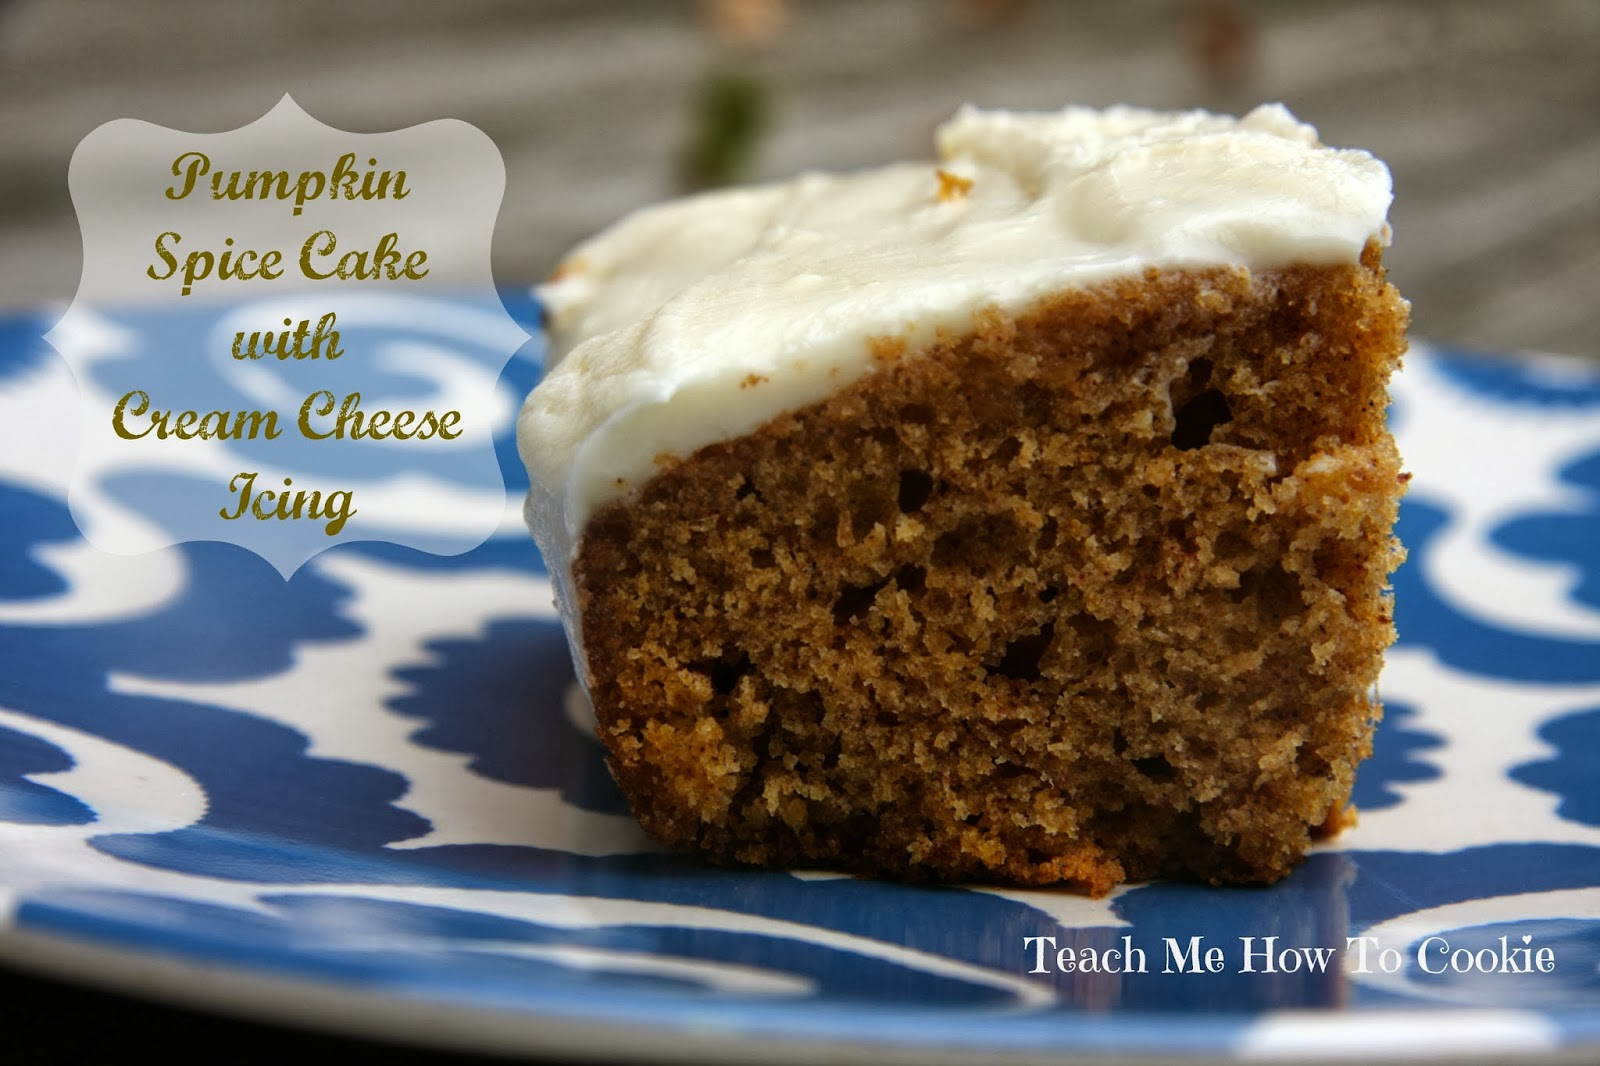 ... How To Cookie: Week #4 Pumpkin Spice Cake with Cream Cheese Frosting